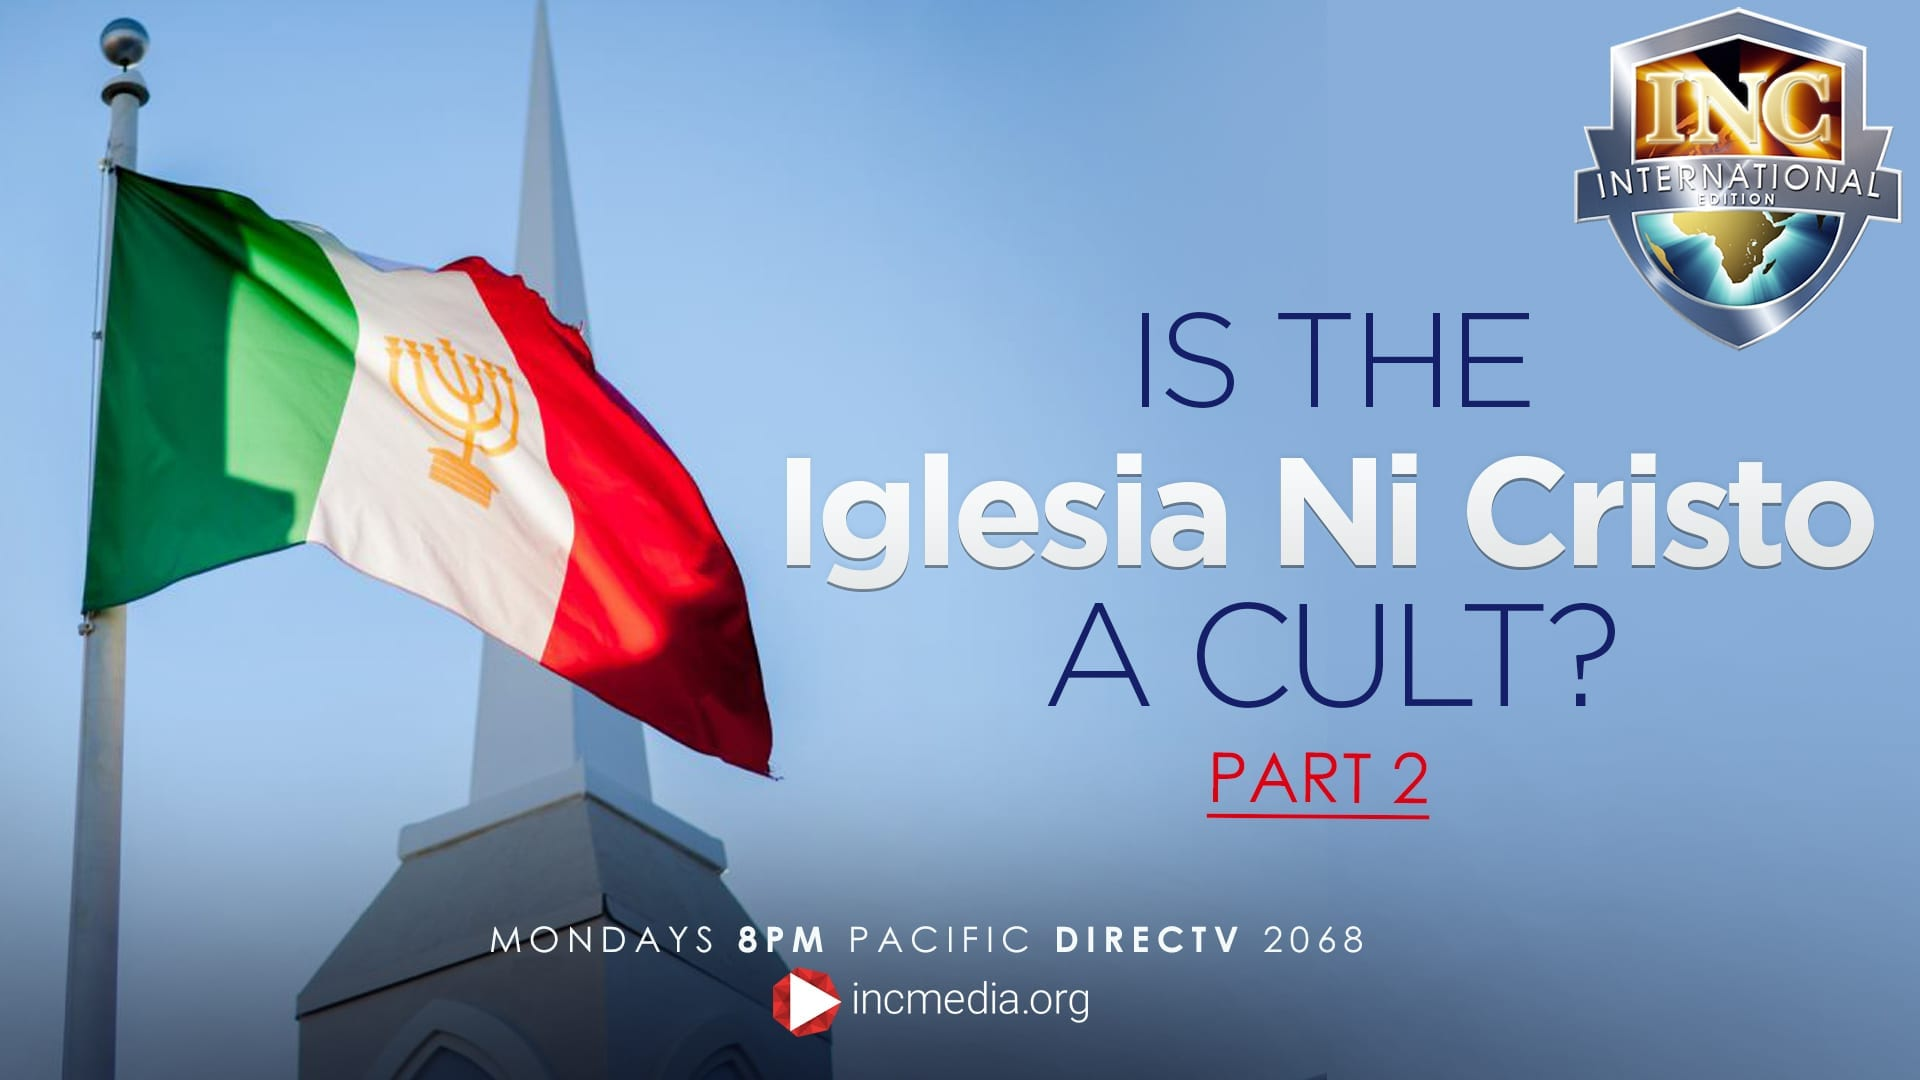 Is the Iglesia Ni Cristo a Cult? Part 2